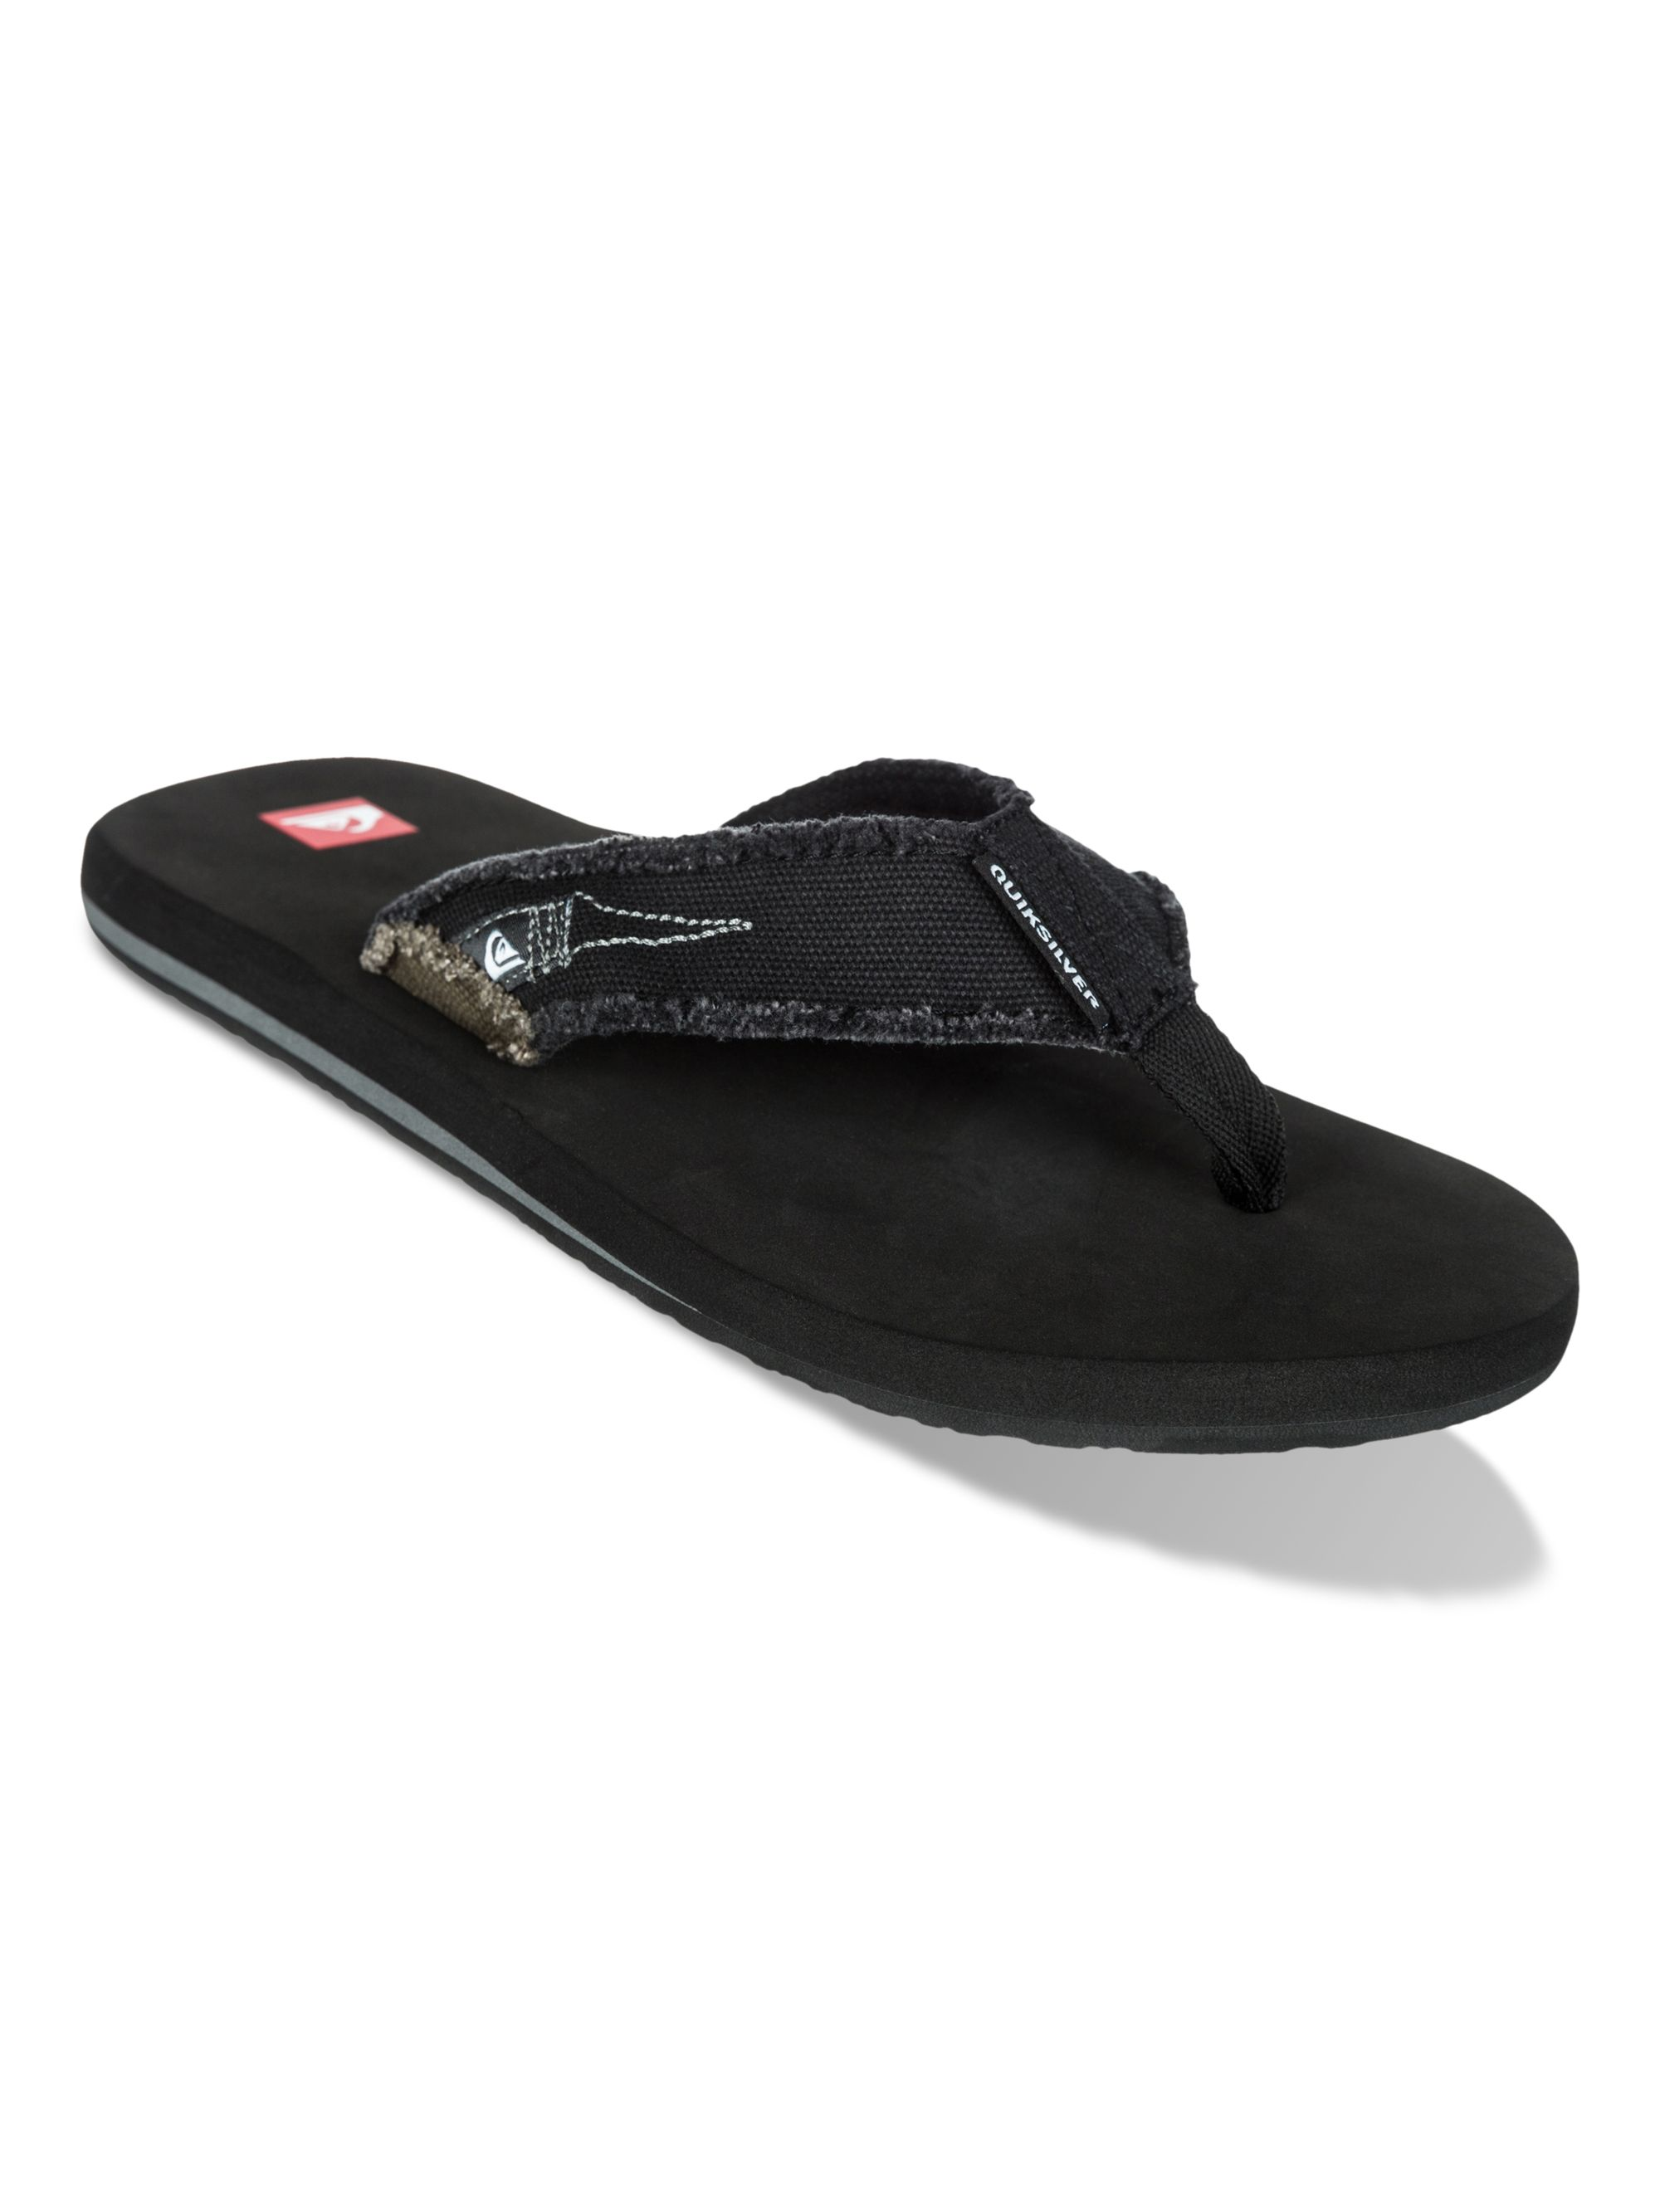 Abyss canvas flip flop